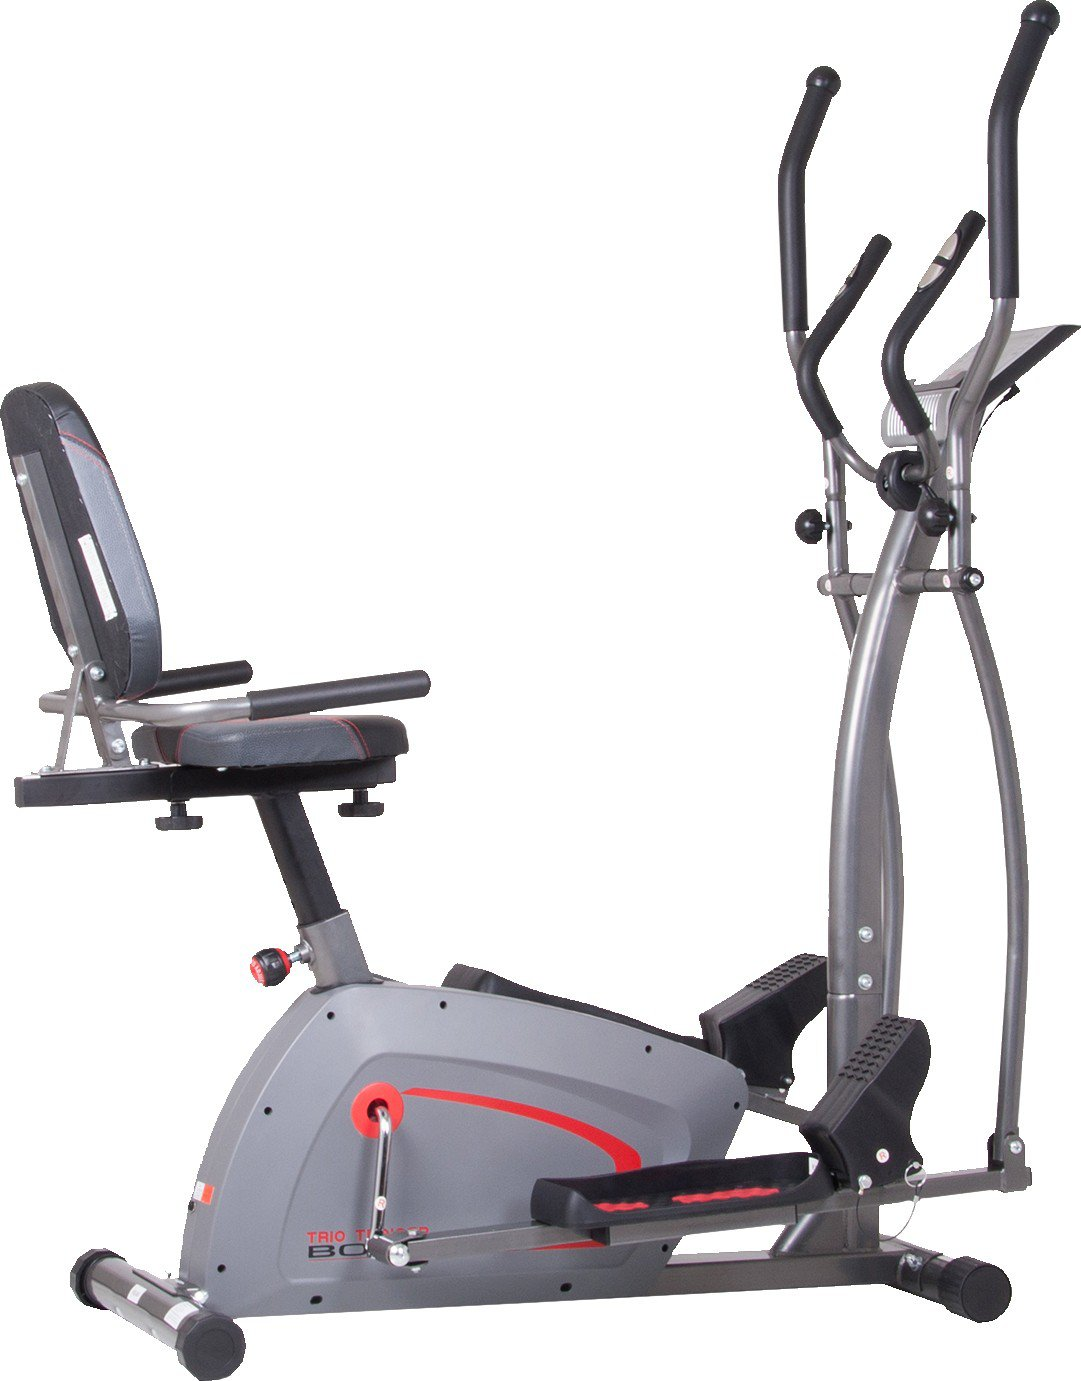 What are the Elliptical machines?